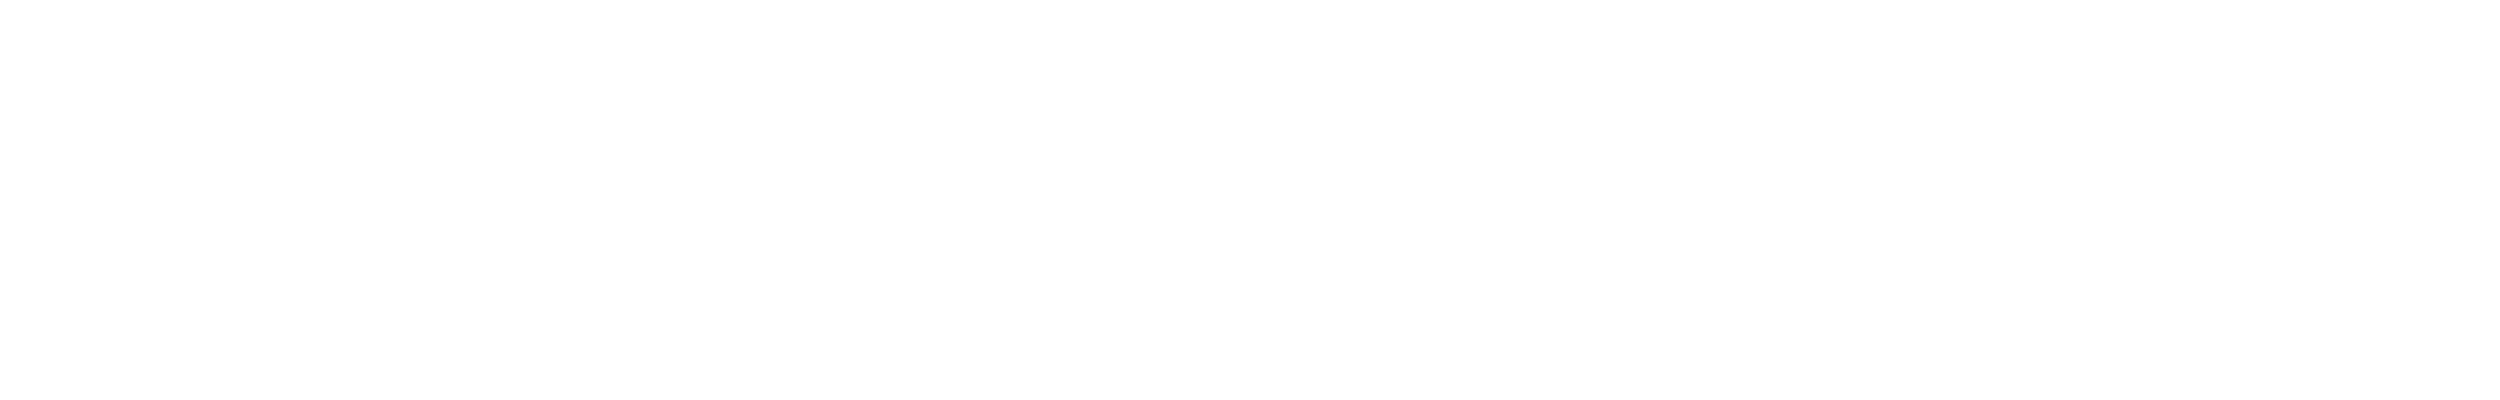 providers-behavioral-alerts-icon.png